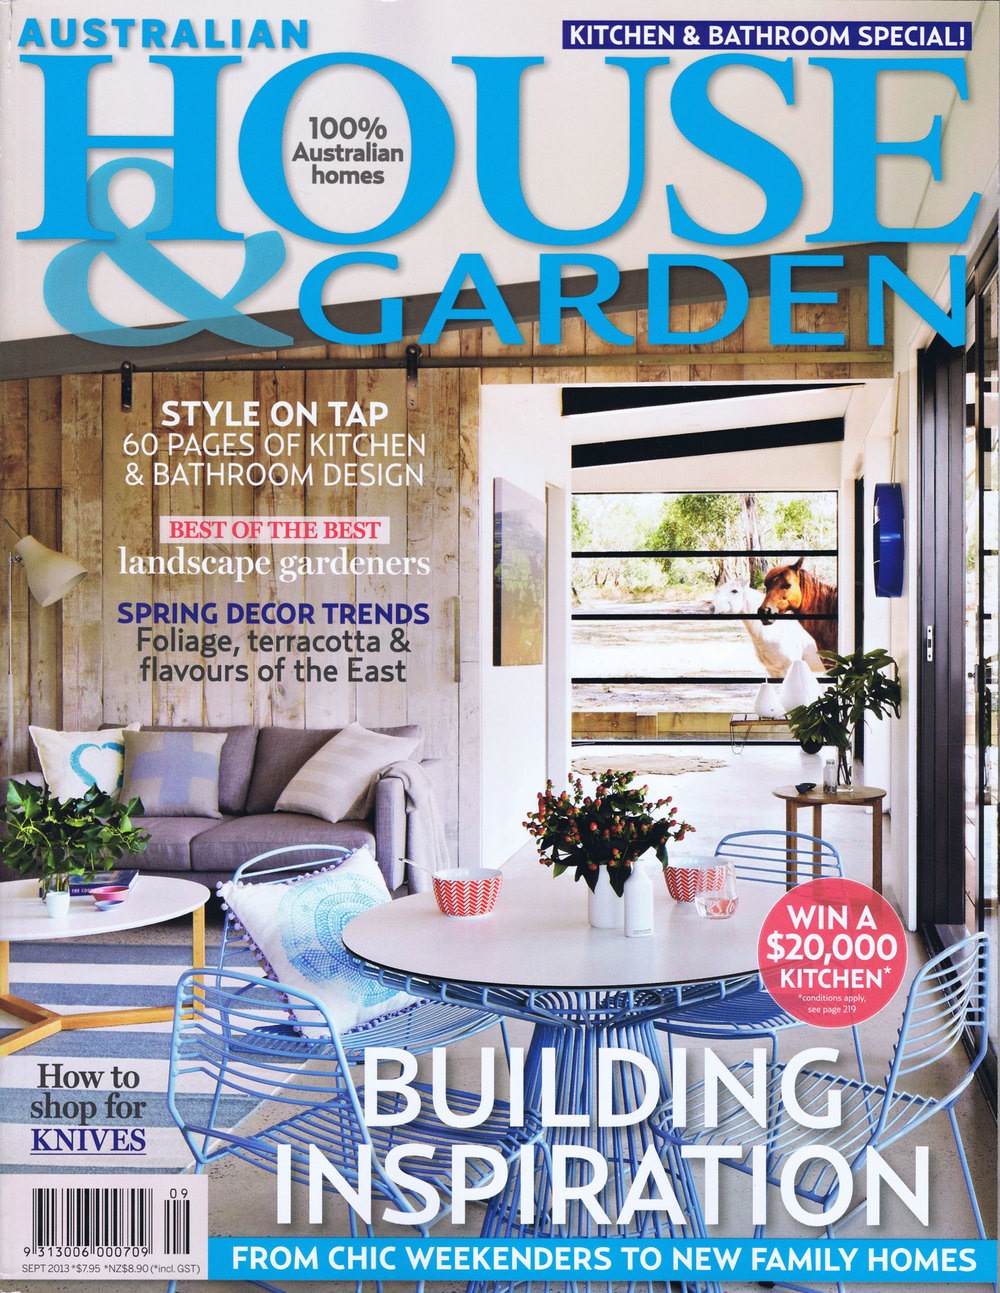 house-and-garden-sept-2013-cover.jpg